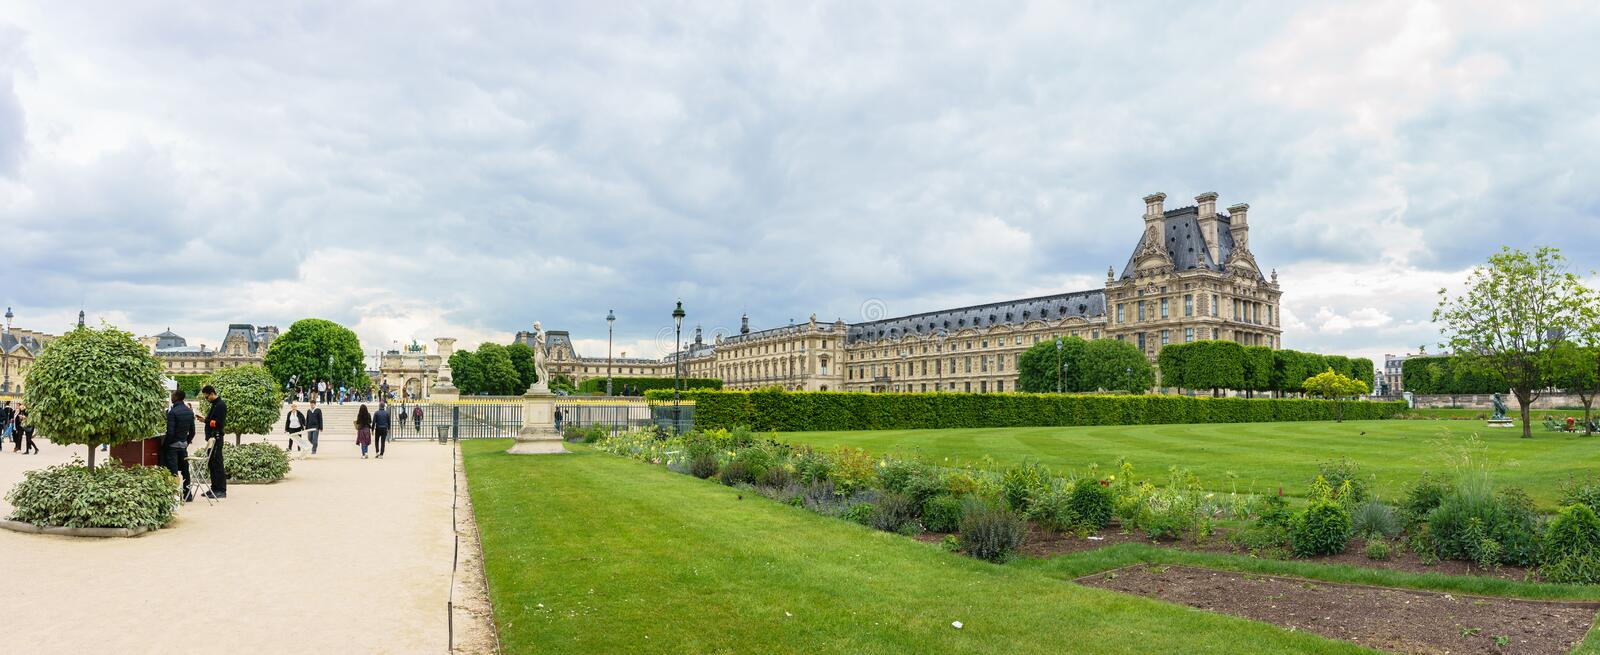 Paris, France - May 2, 2017: Panorama views of the Louvre buildings in the main courtyard (Cour Napoleon) of Louvre Museum views stock photo